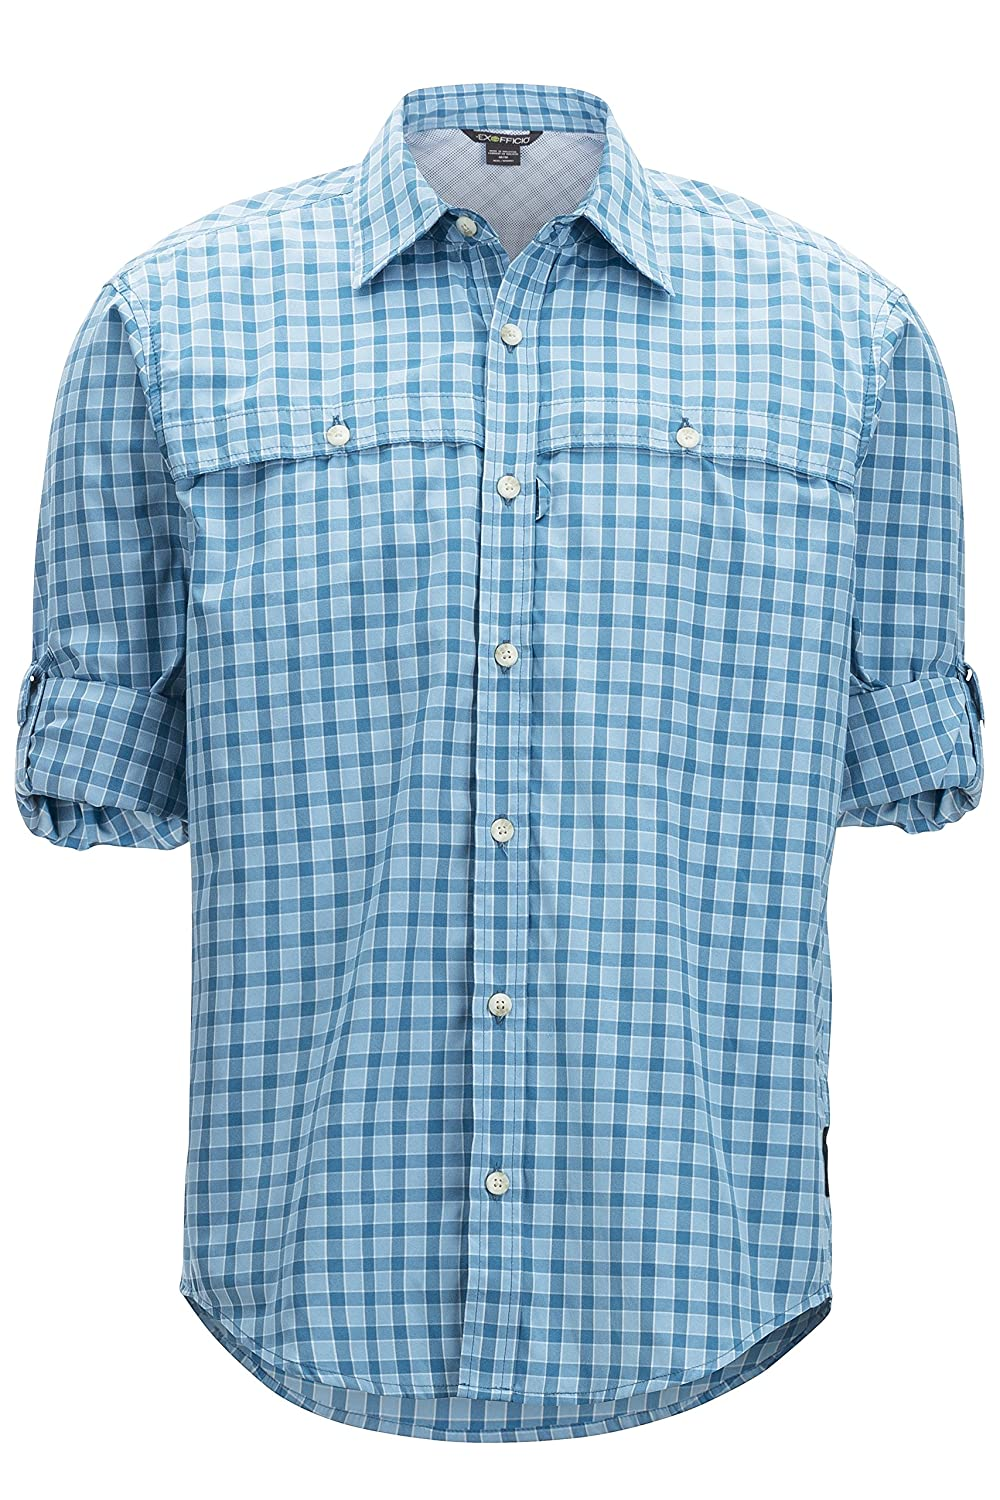 ExOfficio Vuelo Ginghambutton Down Shirts